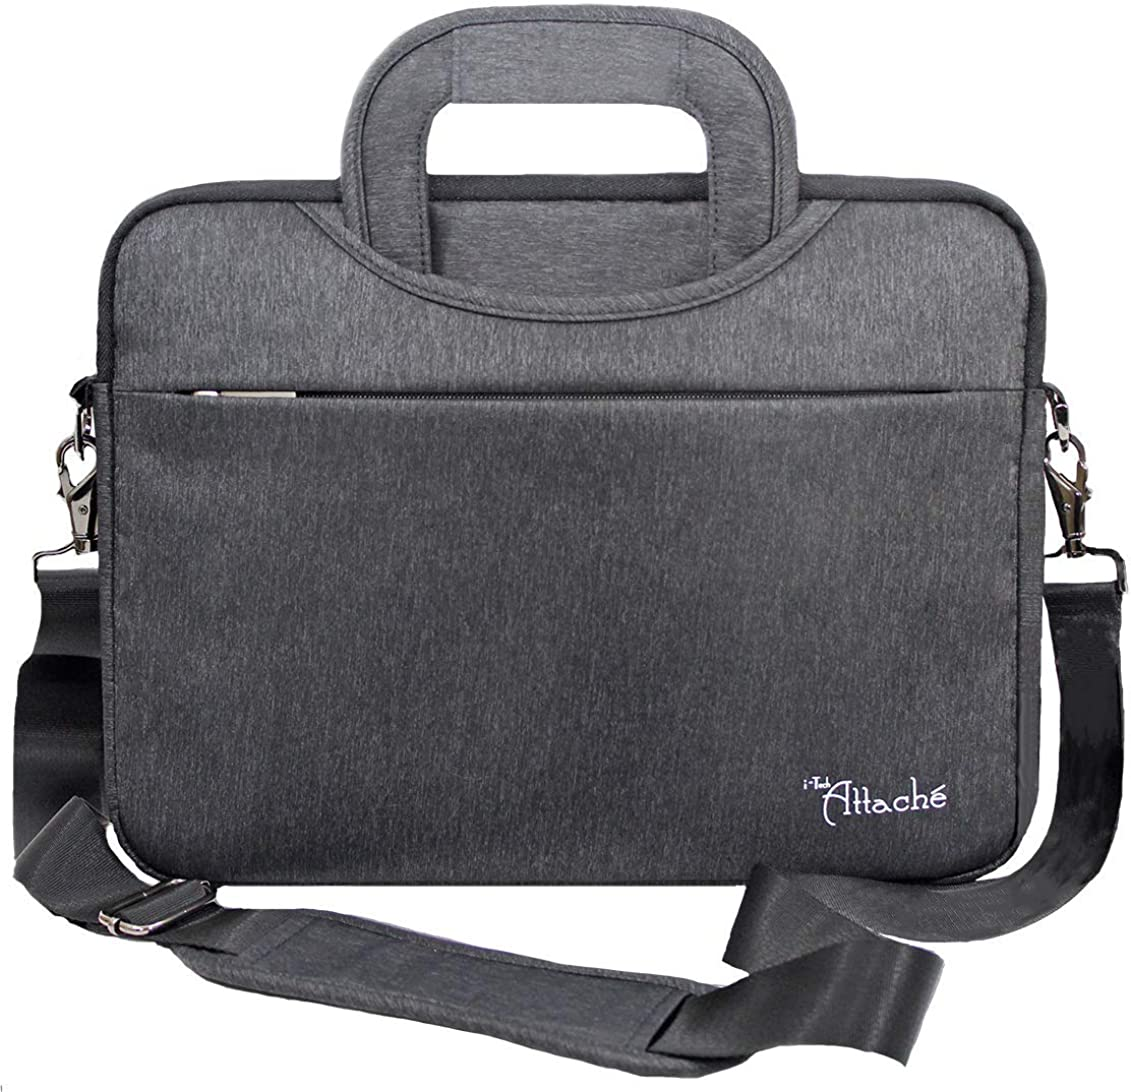 i-Tech Attaché 13 inch Laptop Shoulder Bag Shockproof Waterproof Messenger Bag for iPad and 13.3 inch Laptops